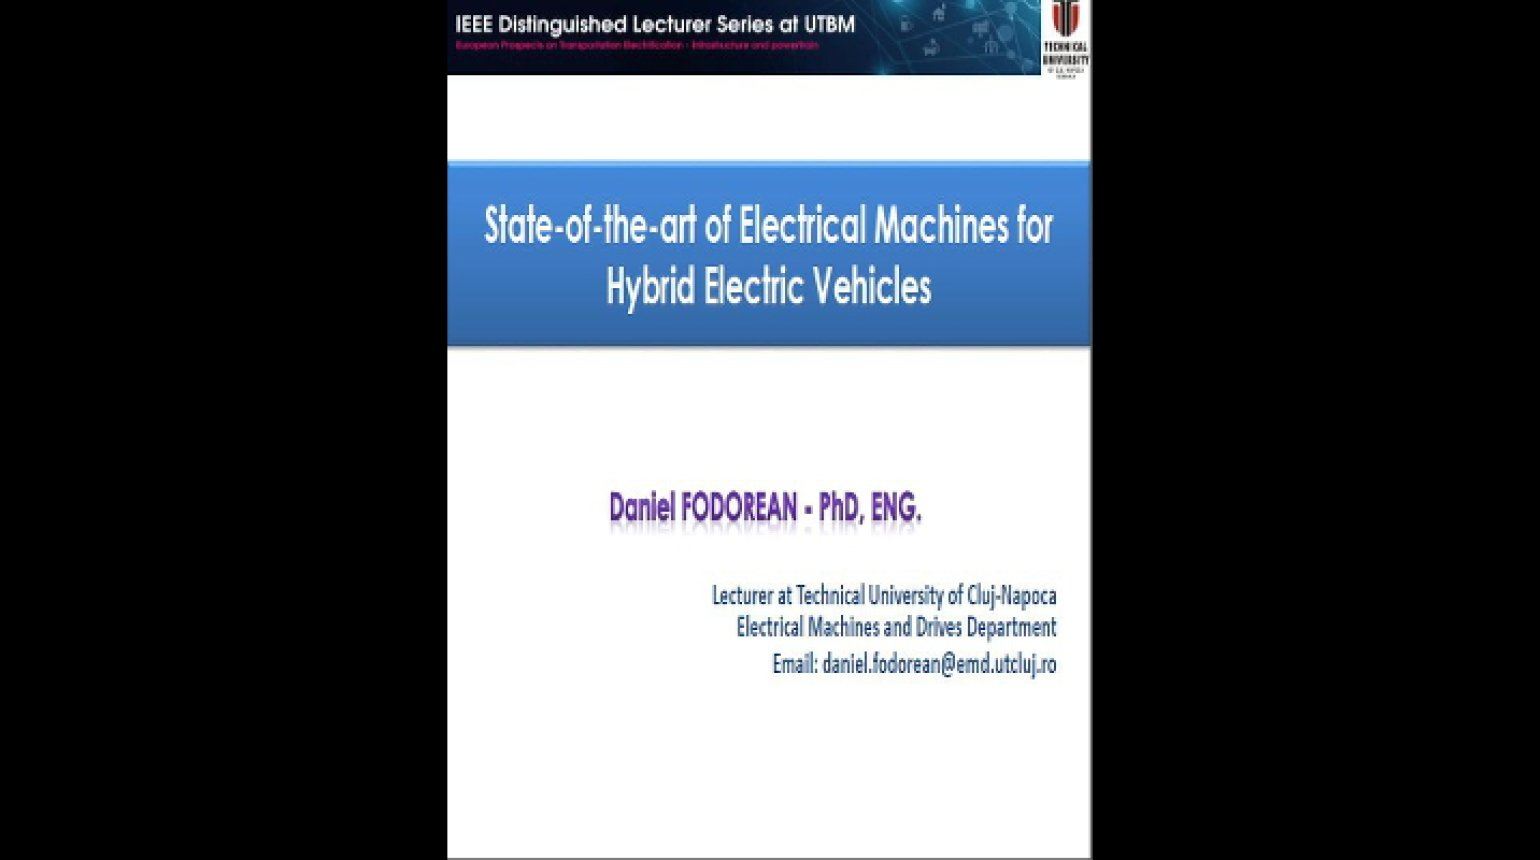 Video - State-of-the-art Electrical Machines for Hybrid Electric Vehicles